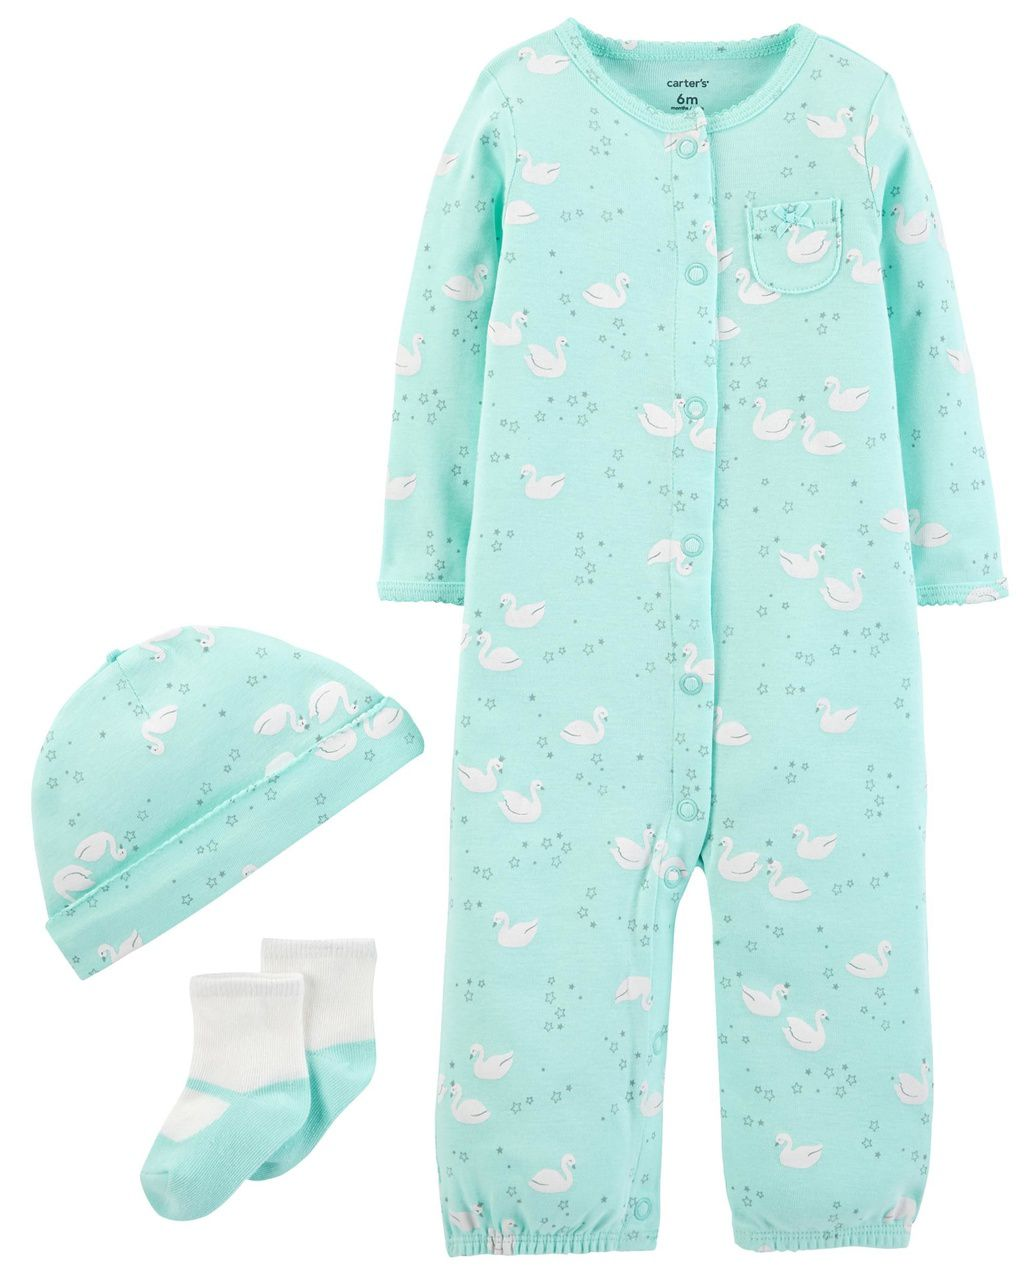 Kit Pijama /Macacão Carter's Take me Home Cisnes